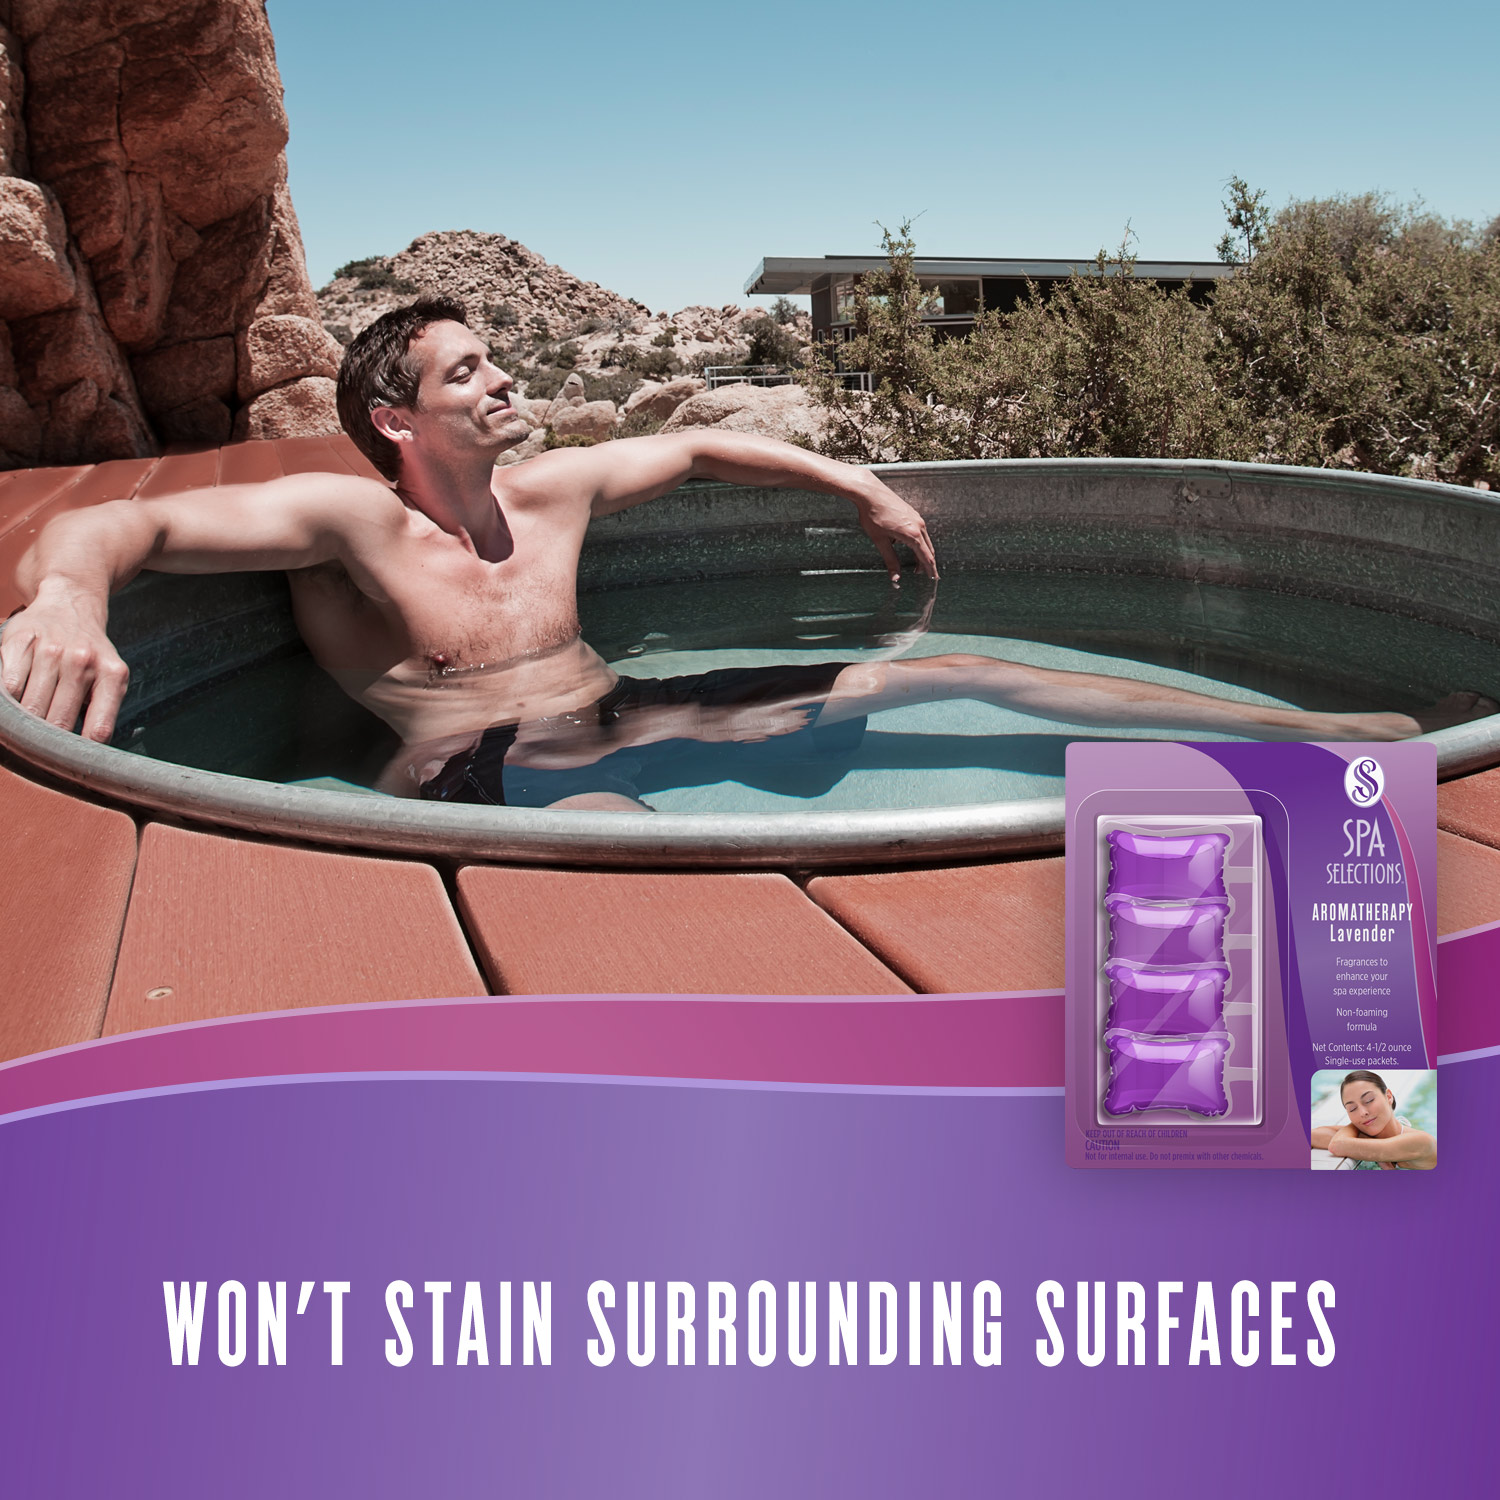 Man enjoying a hot tub in the desert. Spa Selections lavender aromatherapy won't stain surrounding surfaces.